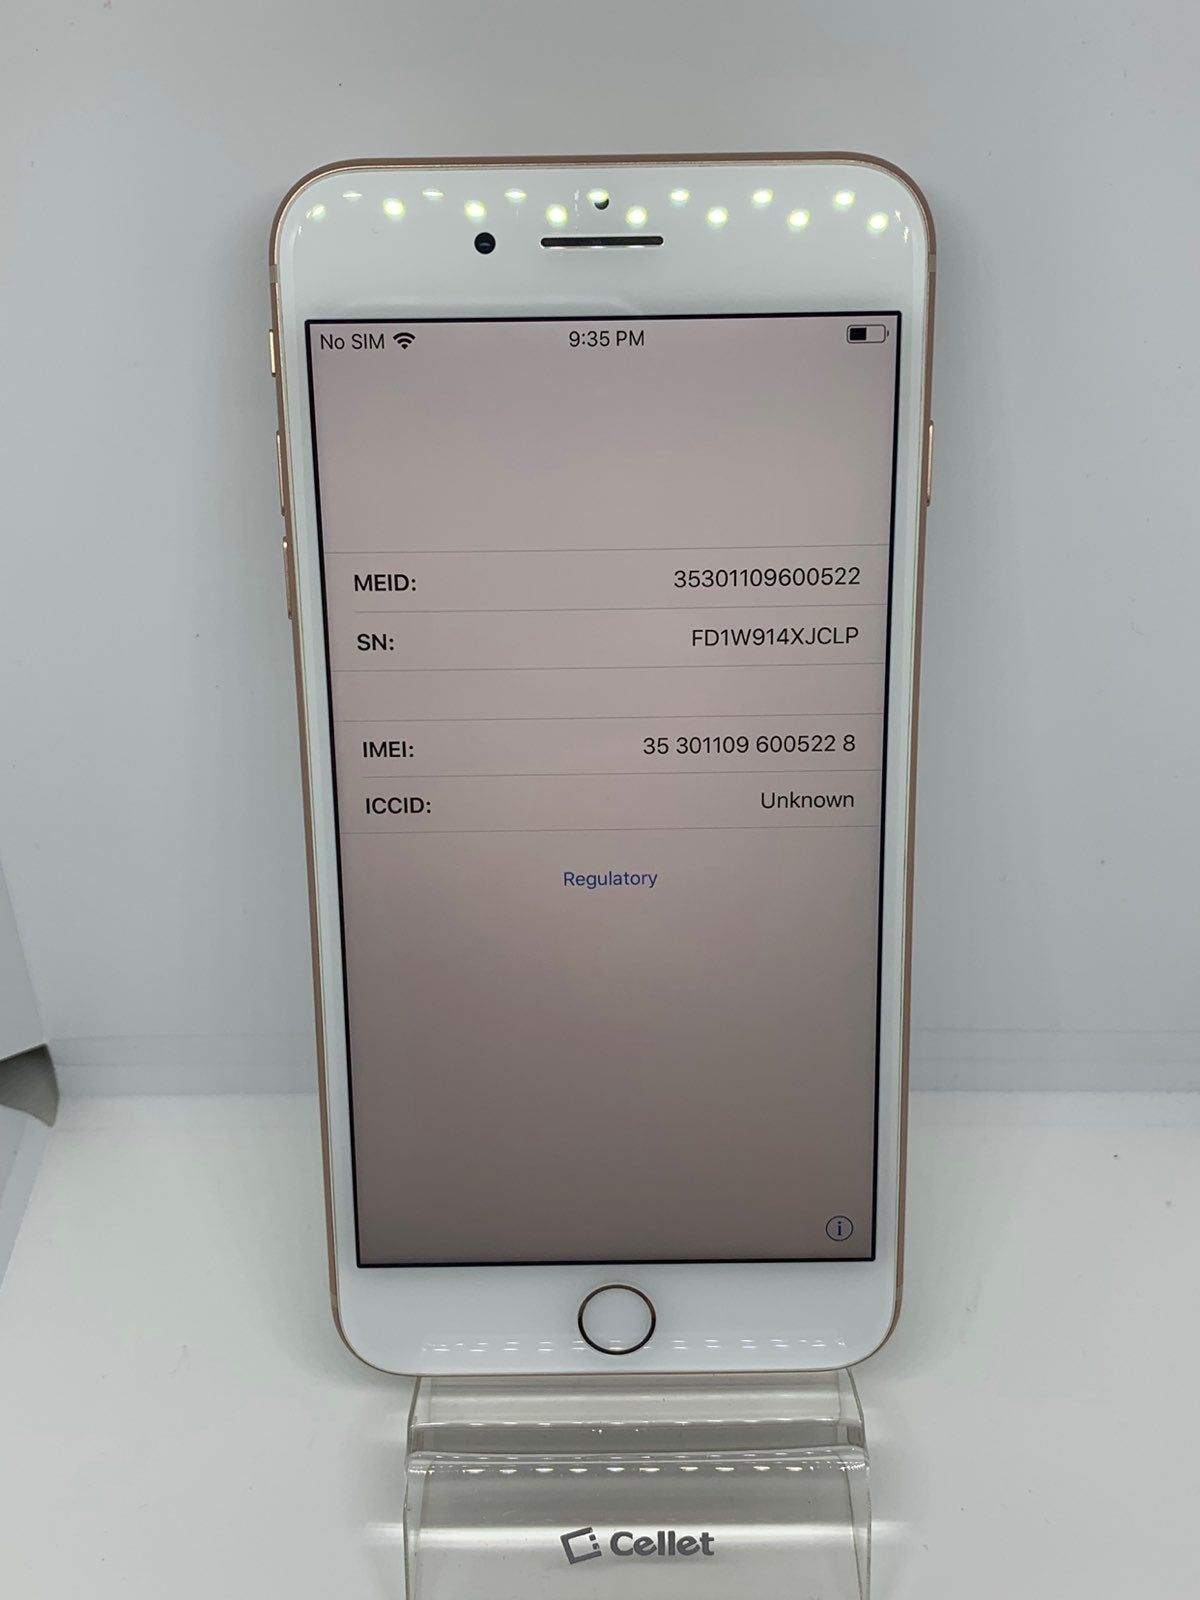 Apple Iphone 8 Plus 256gb Really Good Condition Icloud Locked Bad Imei Carrier Unknown Iphone 8 Plus Apple Iphone Iphone